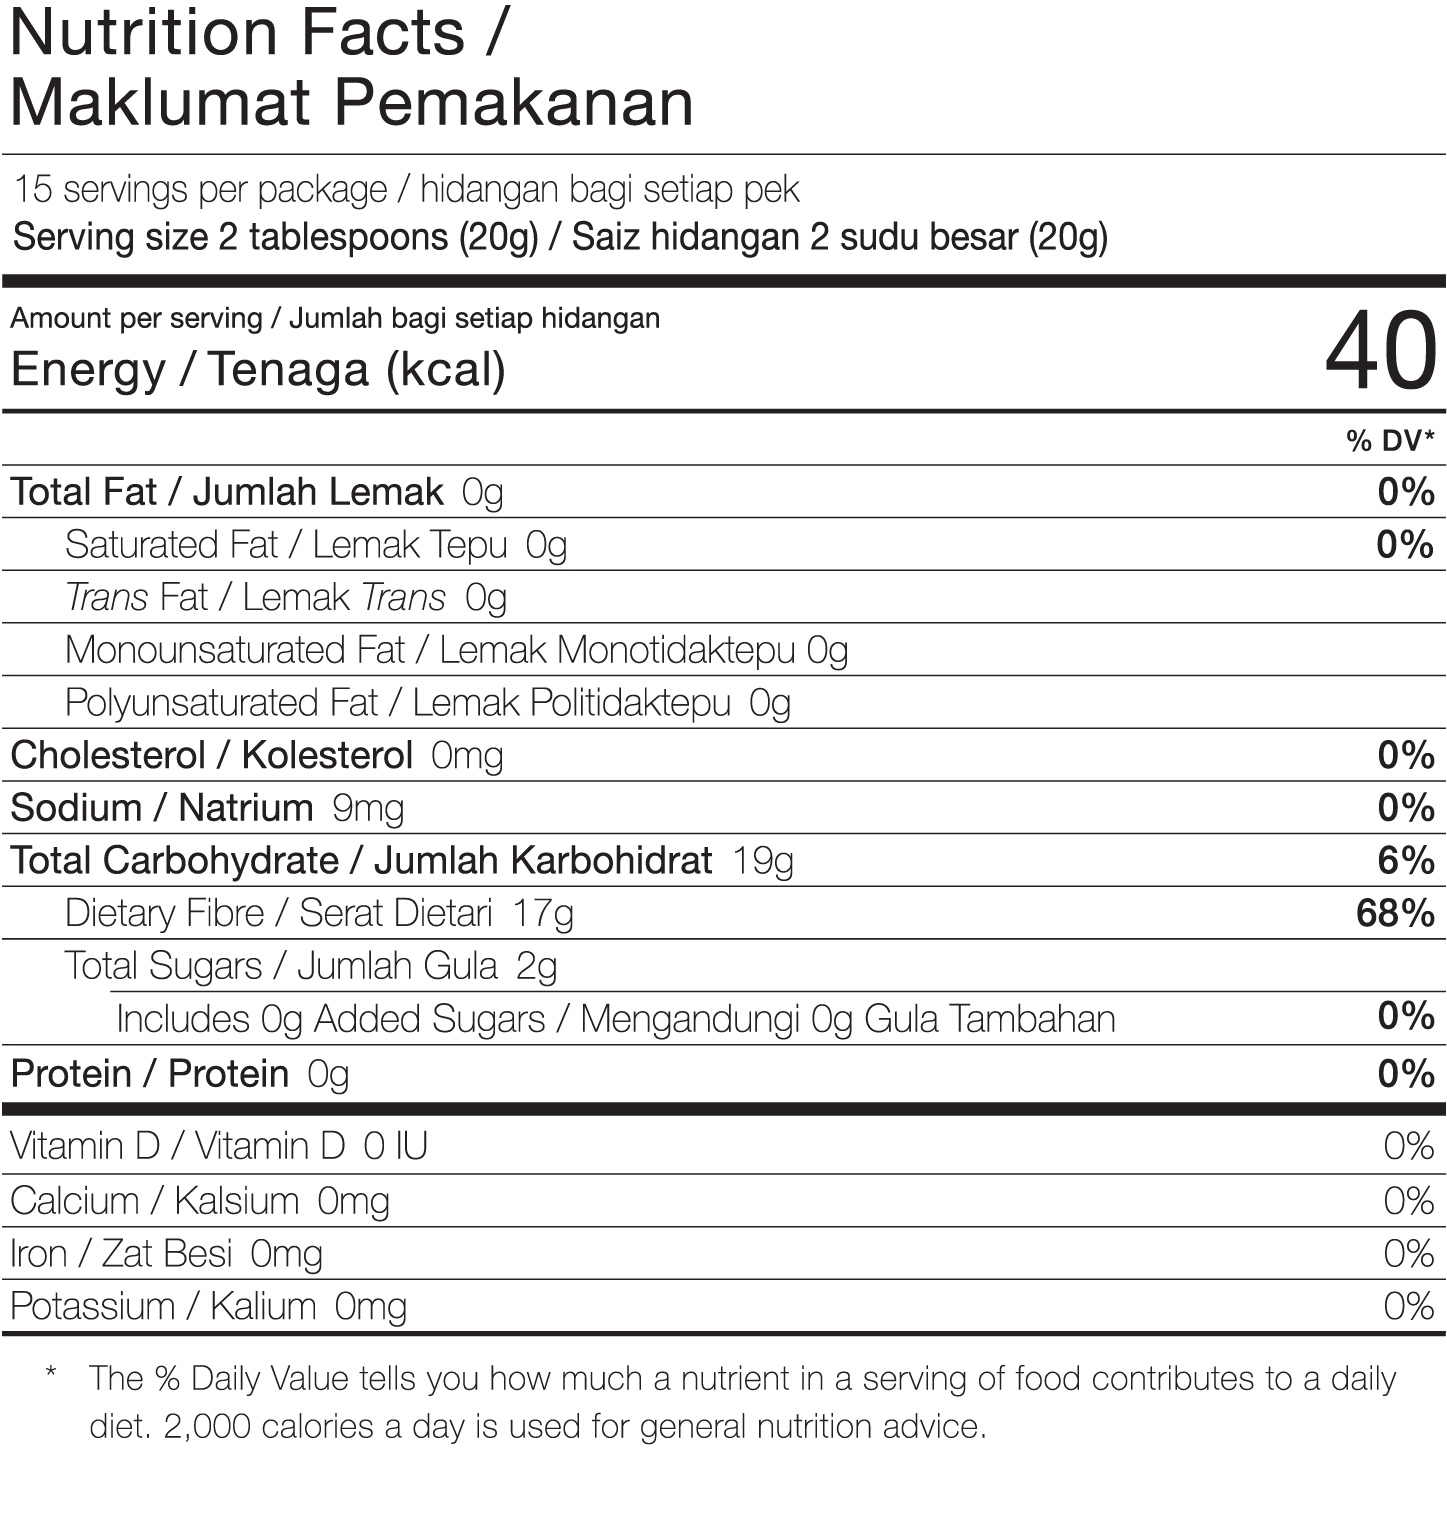 NUTRITION FACTS (MOBILE)-01.jpg